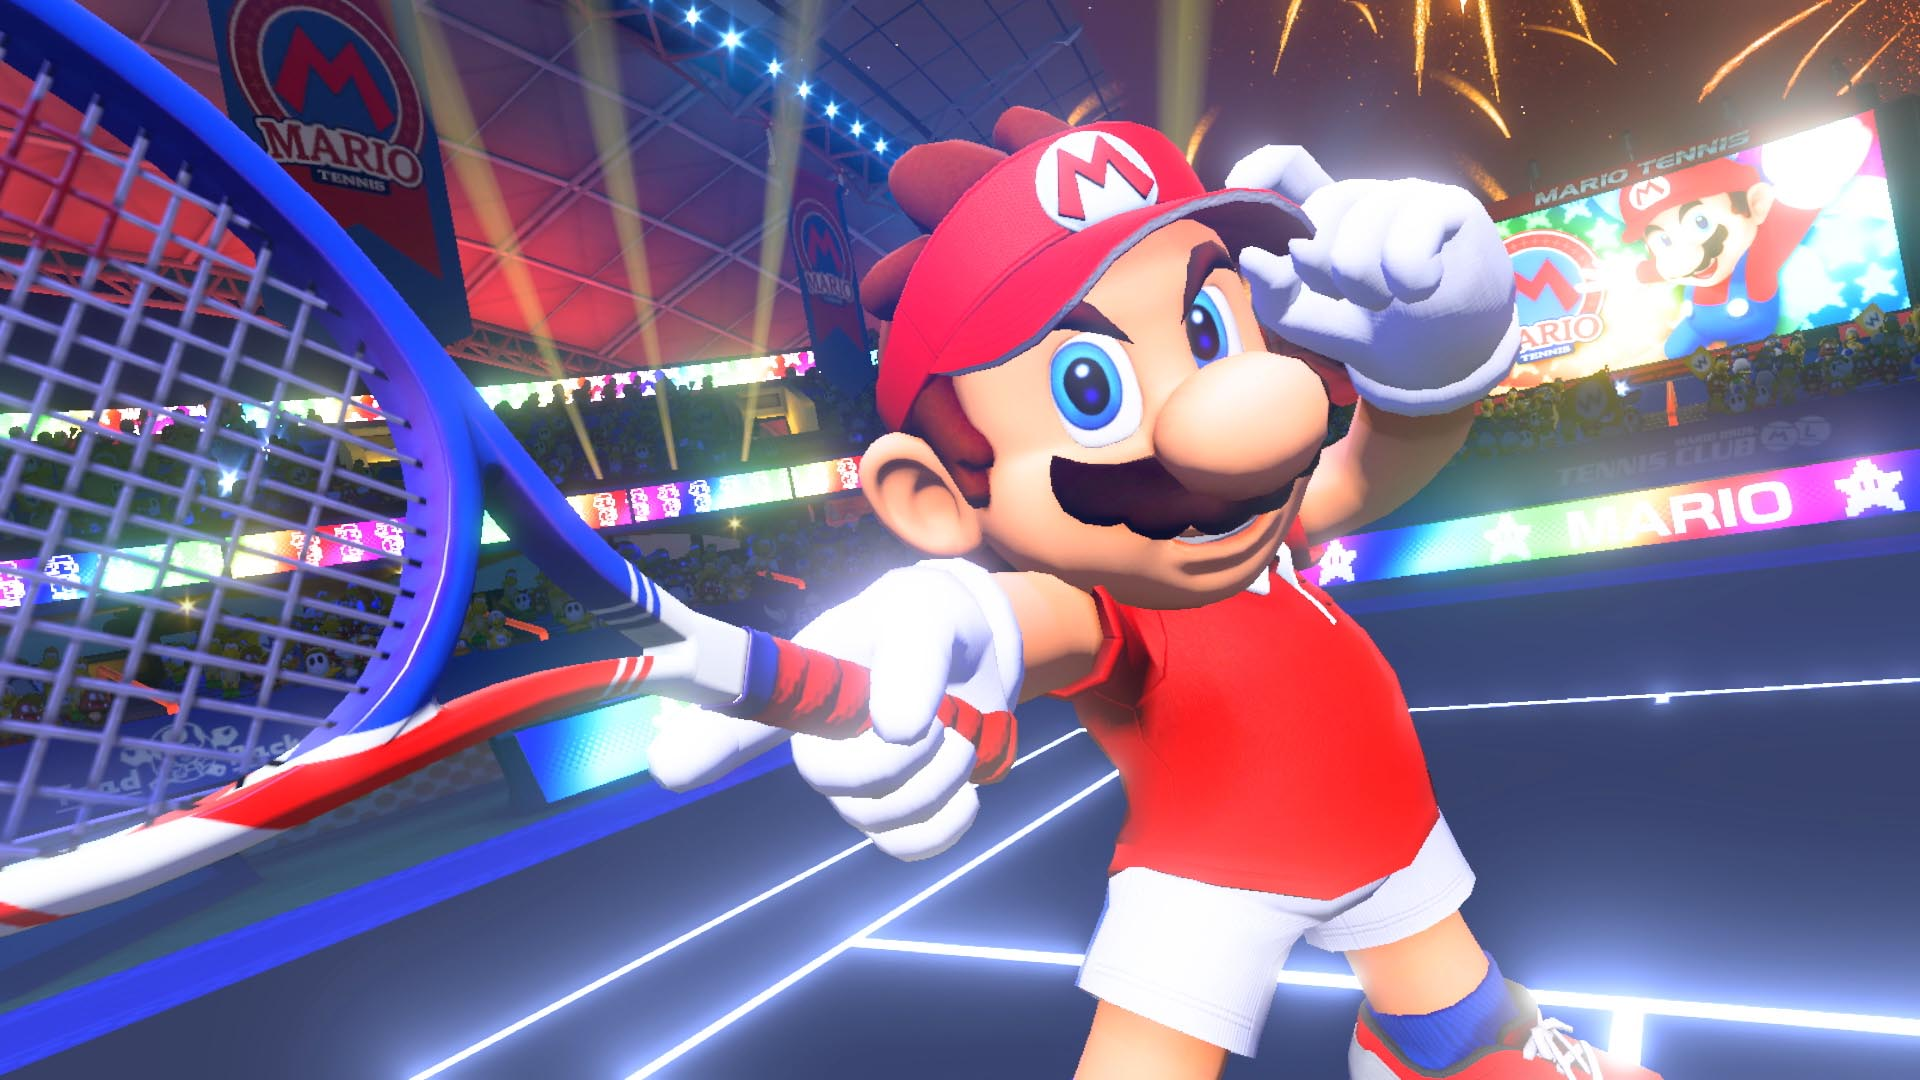 Mario Tennis Aces cheats and tips - Tennis tips to take you from small time to star